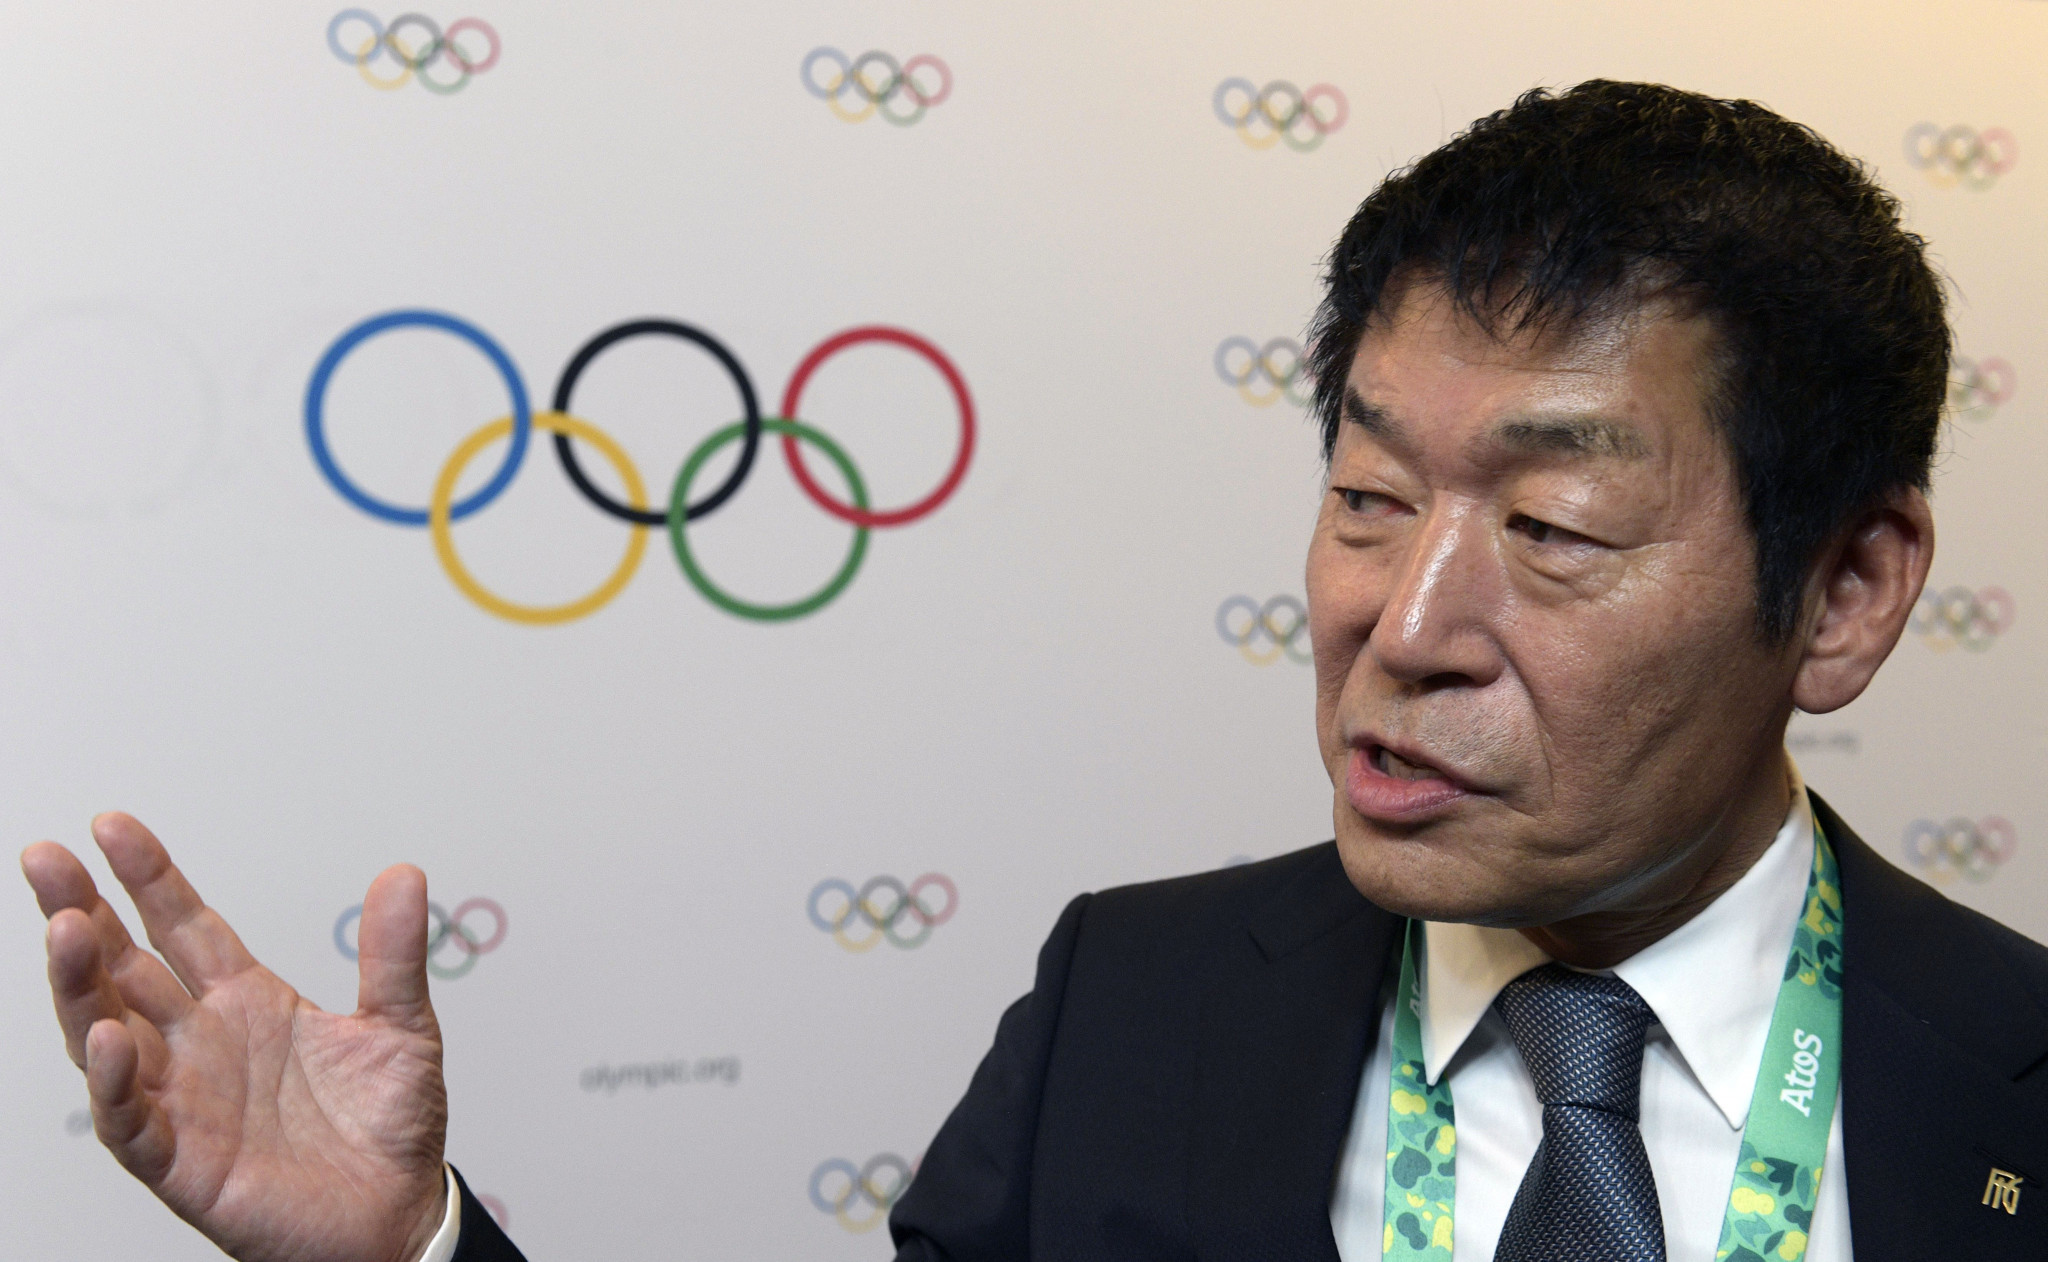 FIG President Morinari Watanabe was among the members elected at the Session today ©Getty Images